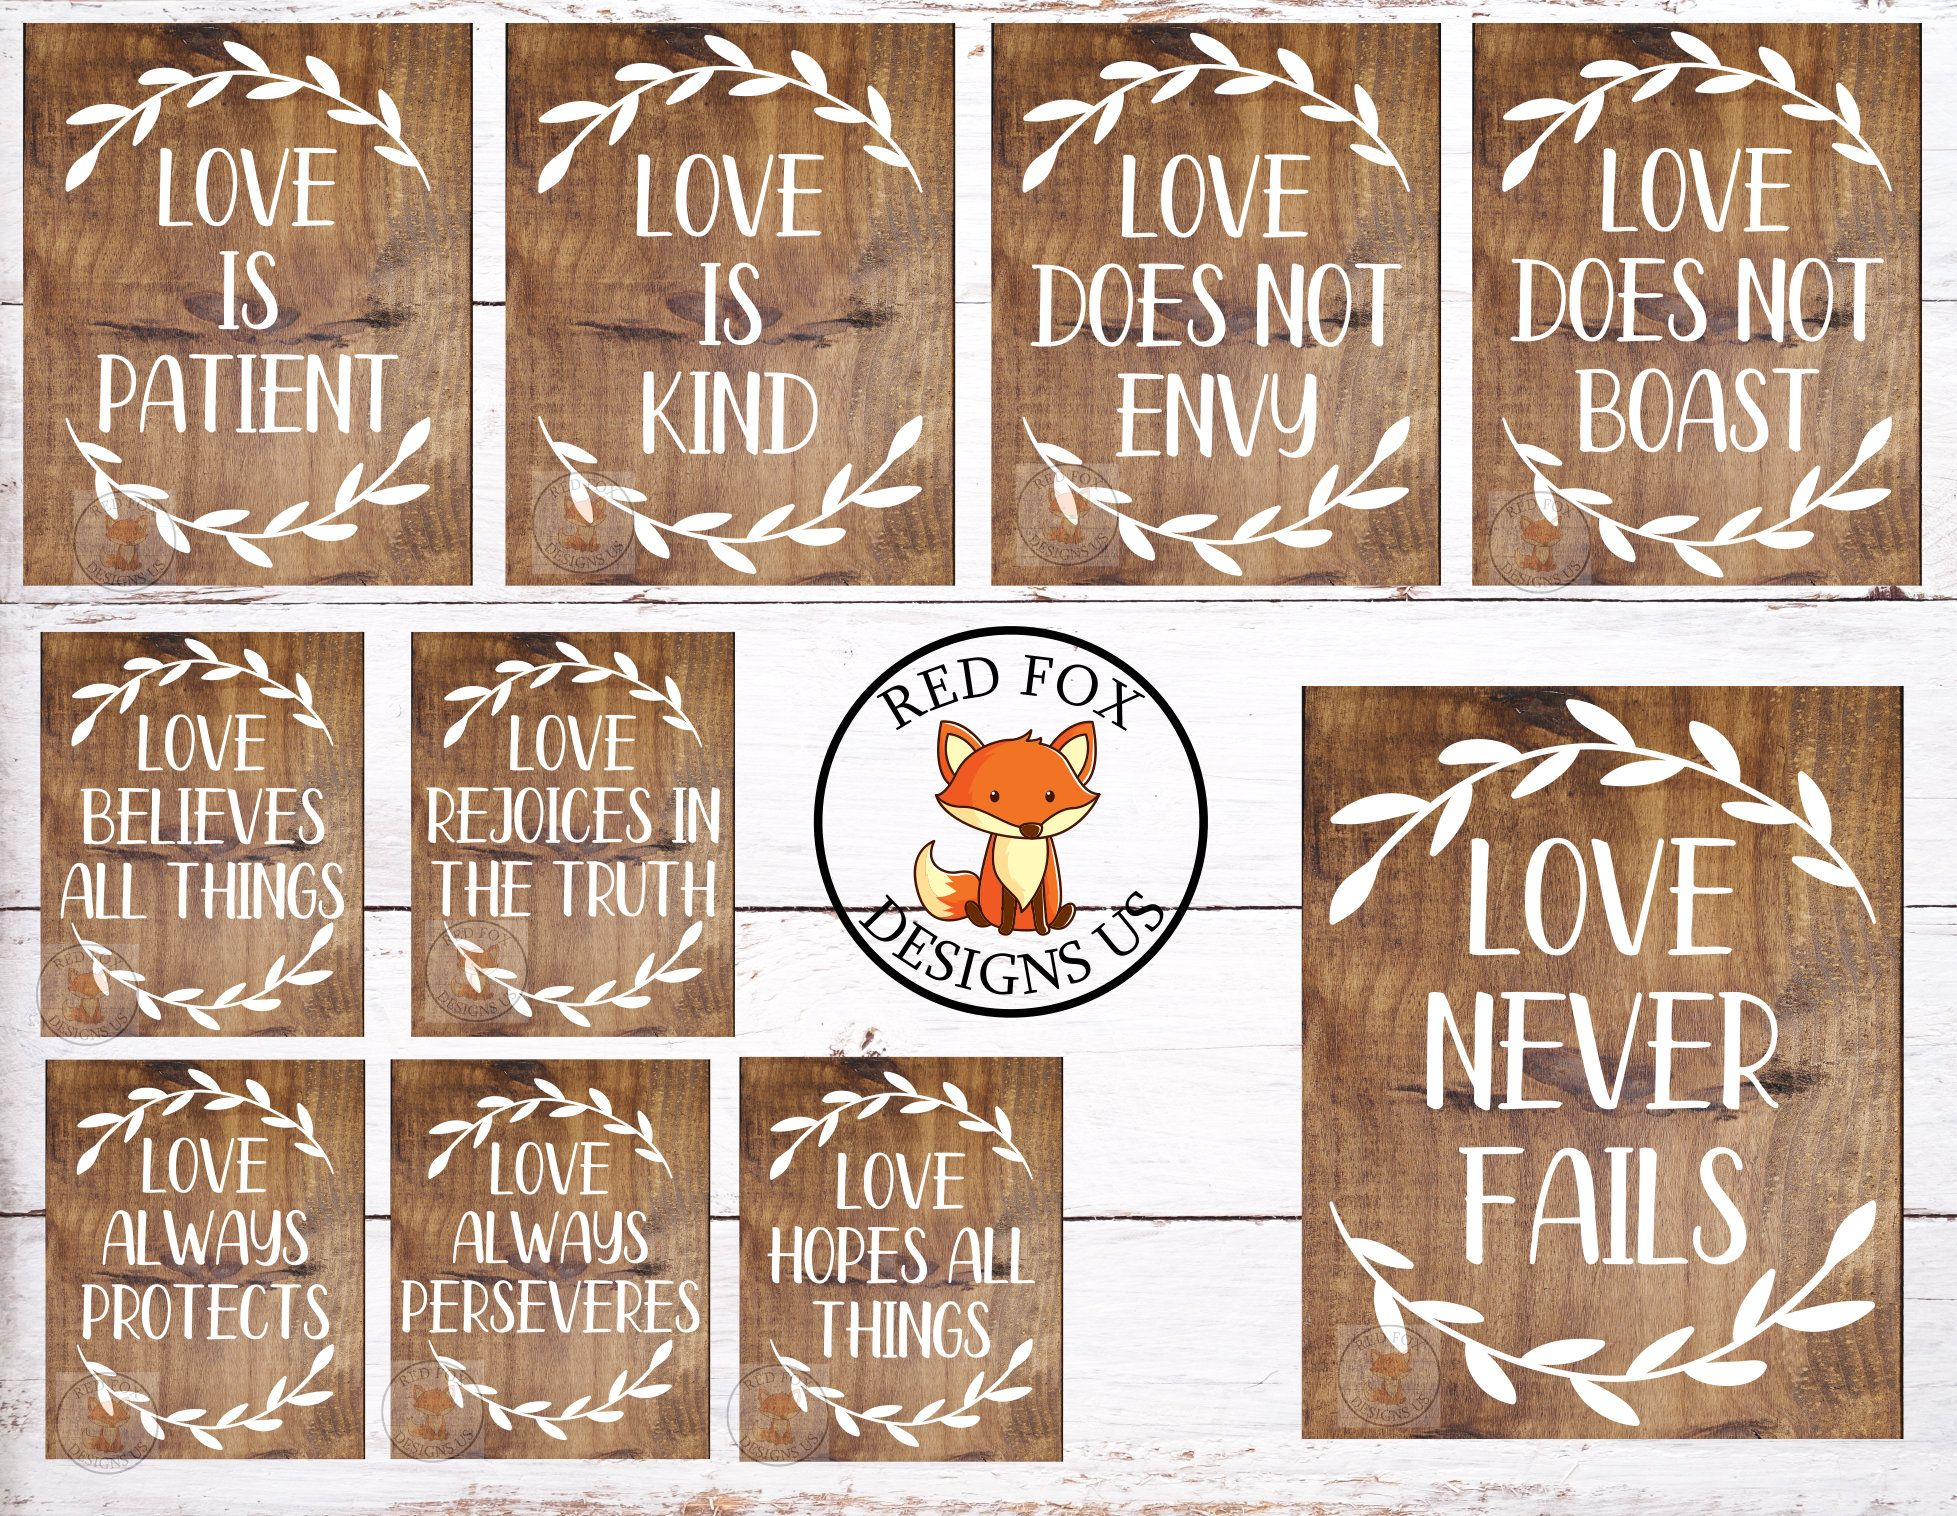 Set of 10 Wedding Aisle Signs Love is Kind Hand Painted Wood Wedding Signage Love Signs 1 Corinthians 13 Wedding Signs Love is Patient